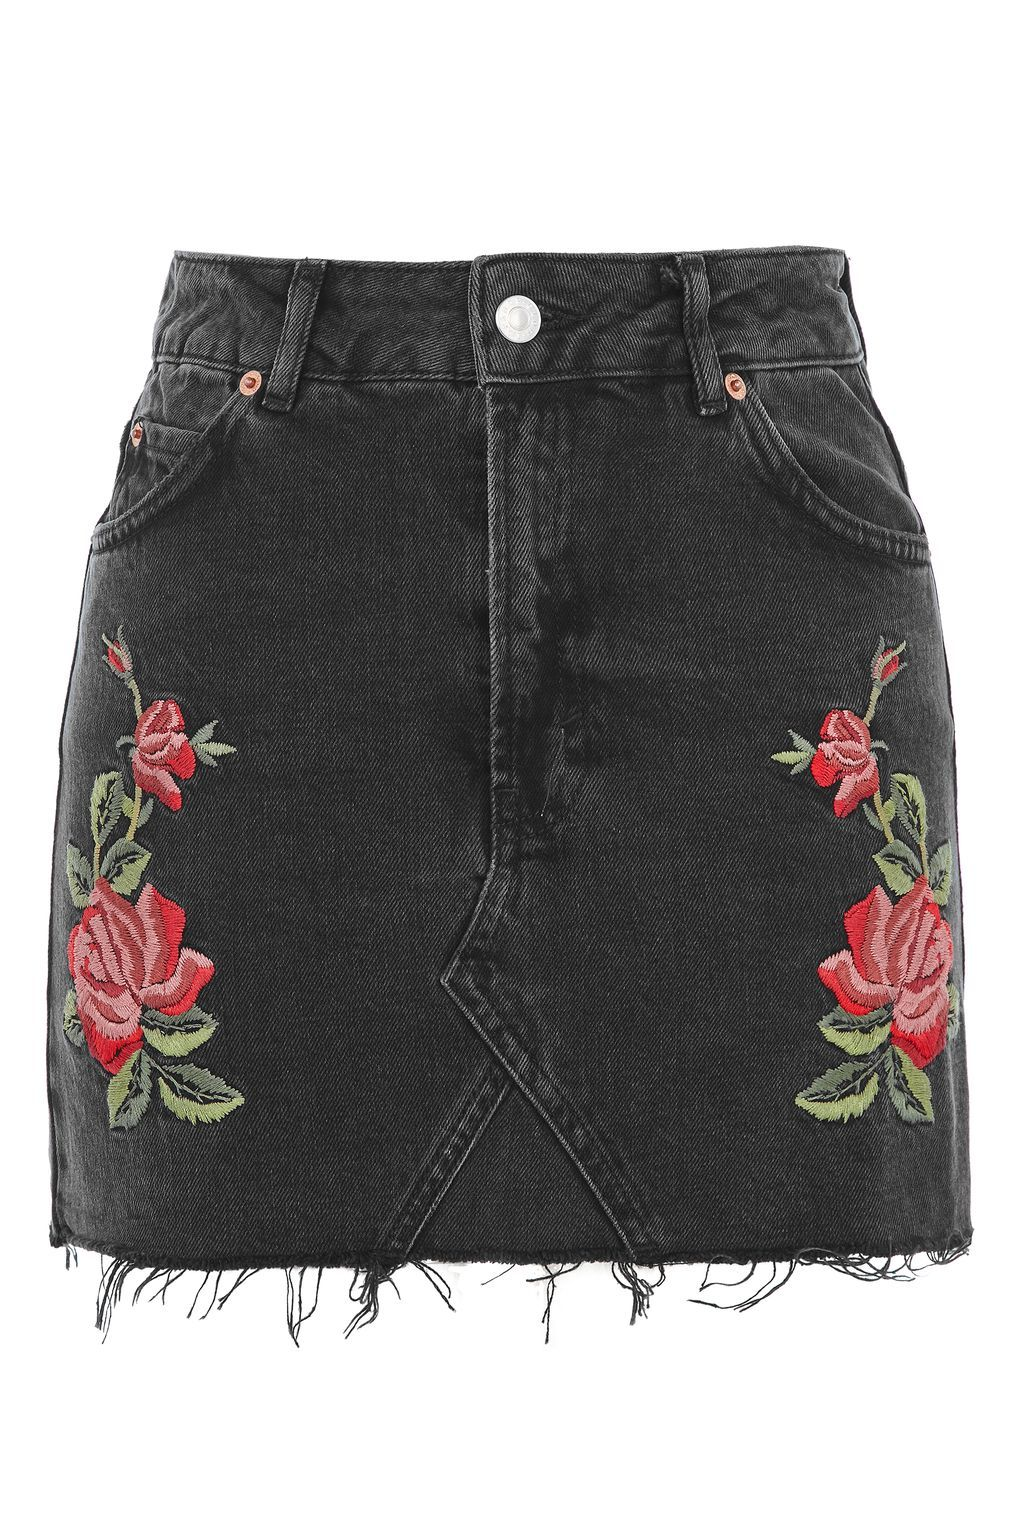 b8a0a0b87 TALL Rose Embroidered Skirt in 2019 | topshop | Black denim skirt ...